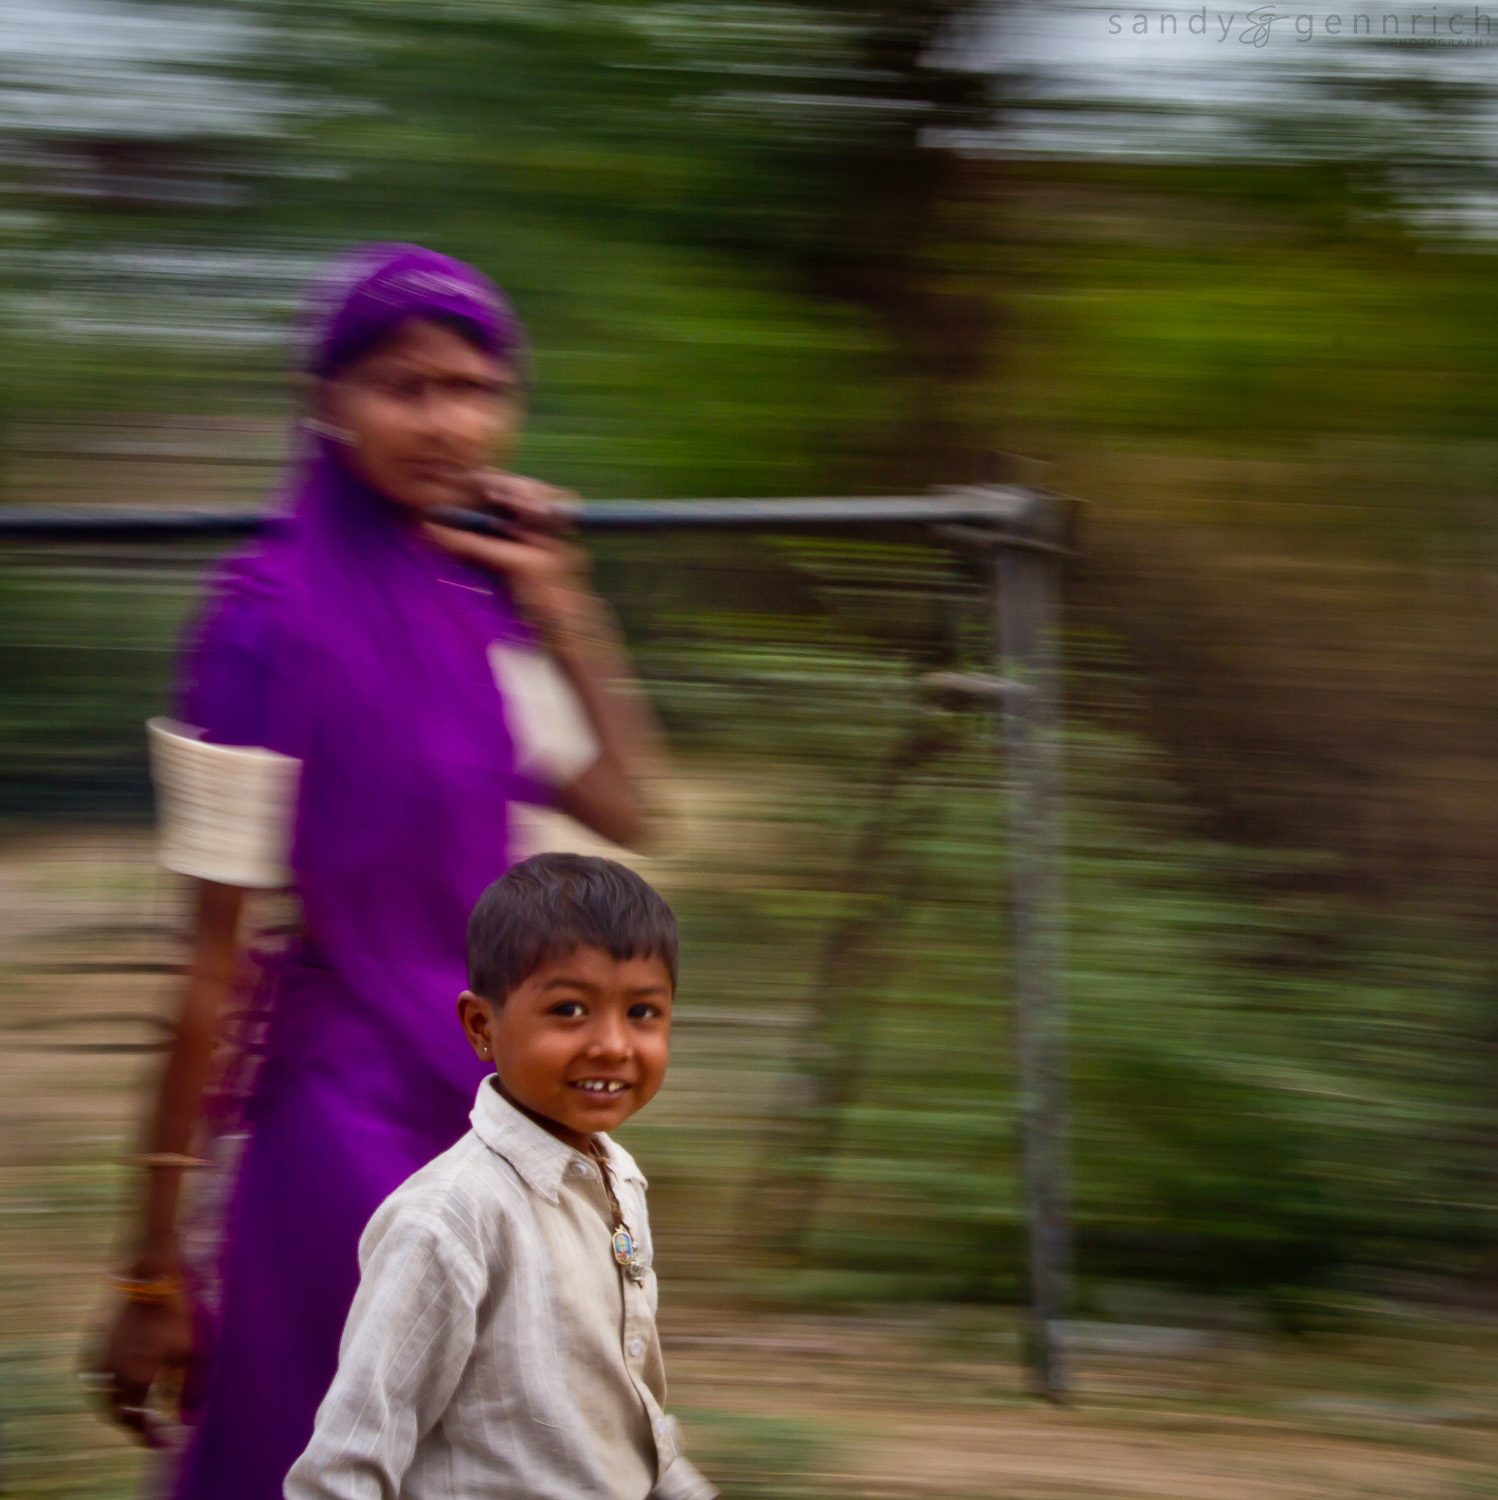 Happy Child - India In Motion - Rajastan - India